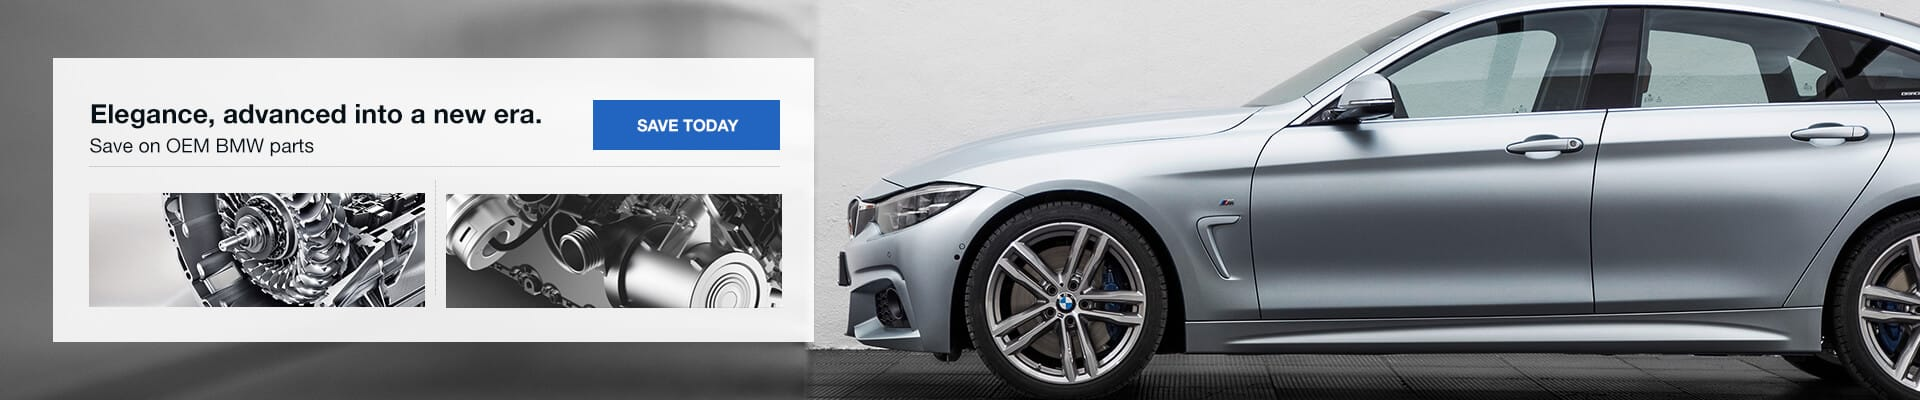 module discount genuine selection parts oem slide image bmw home accessories banner mini